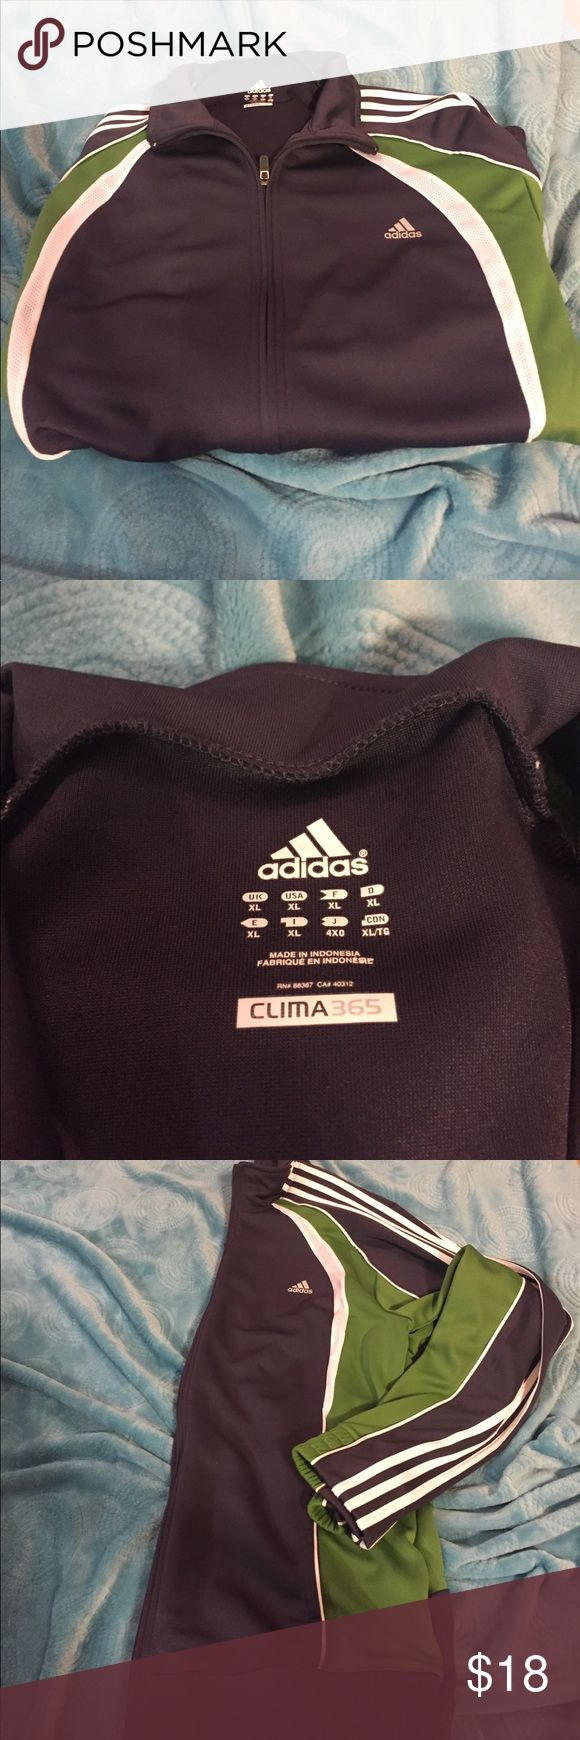 Adidas zip up jacket Men's zip up.       Only worn once!   Great condition.   100% polyester.     Size XL.  Climalite adidas Jackets & Coats Lightweight & Shirt Jackets